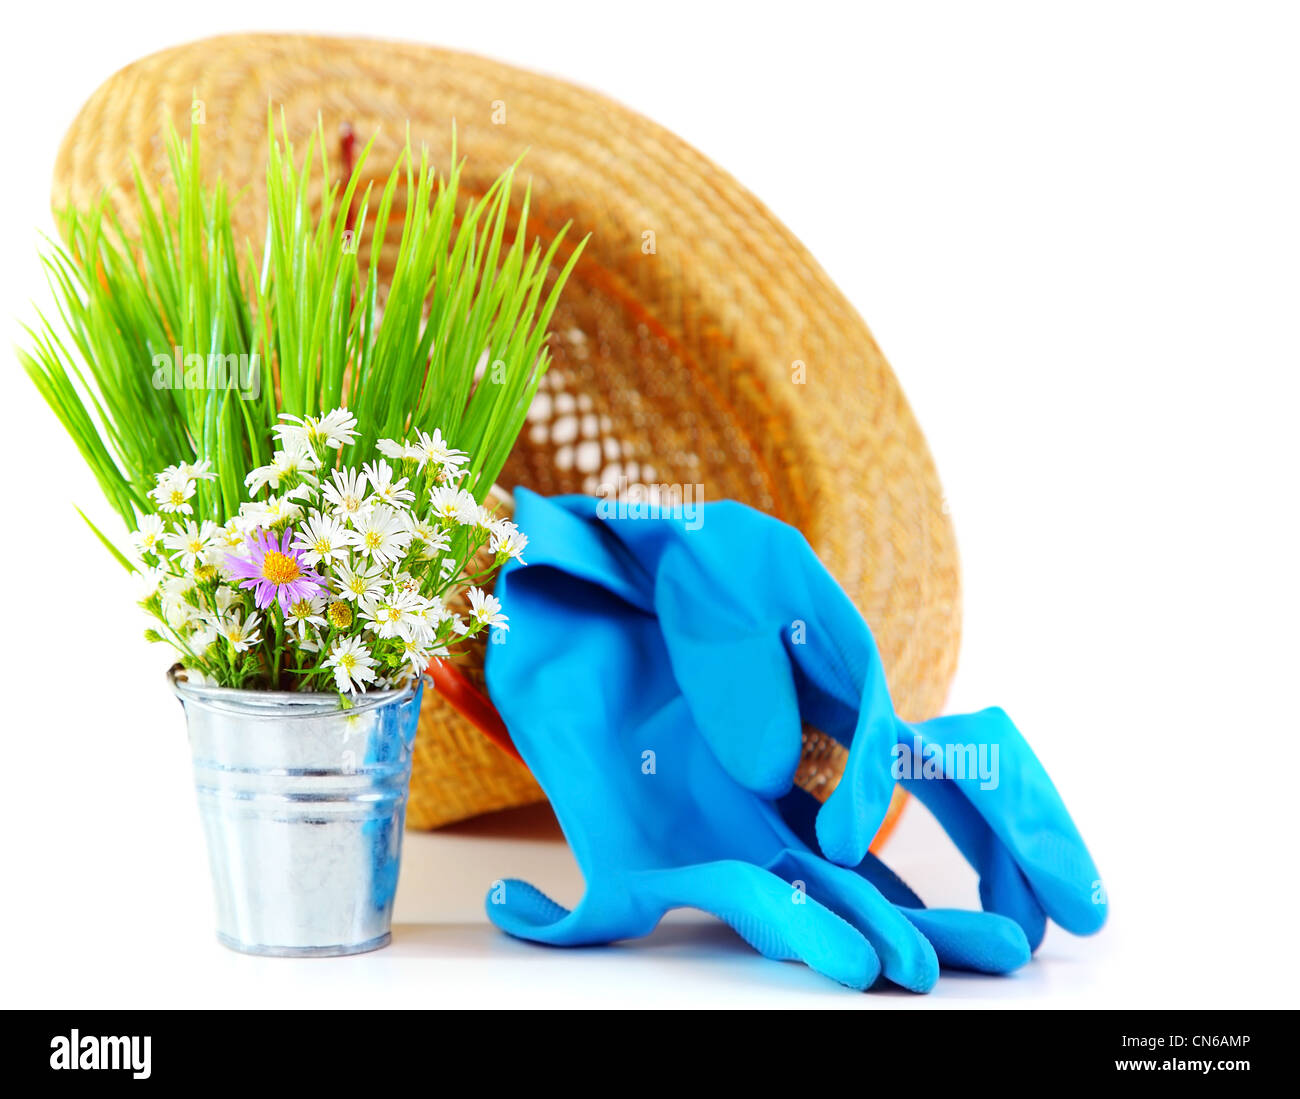 Gardening tools with fresh flowers isolated on white background, organic garden concept Stock Photo